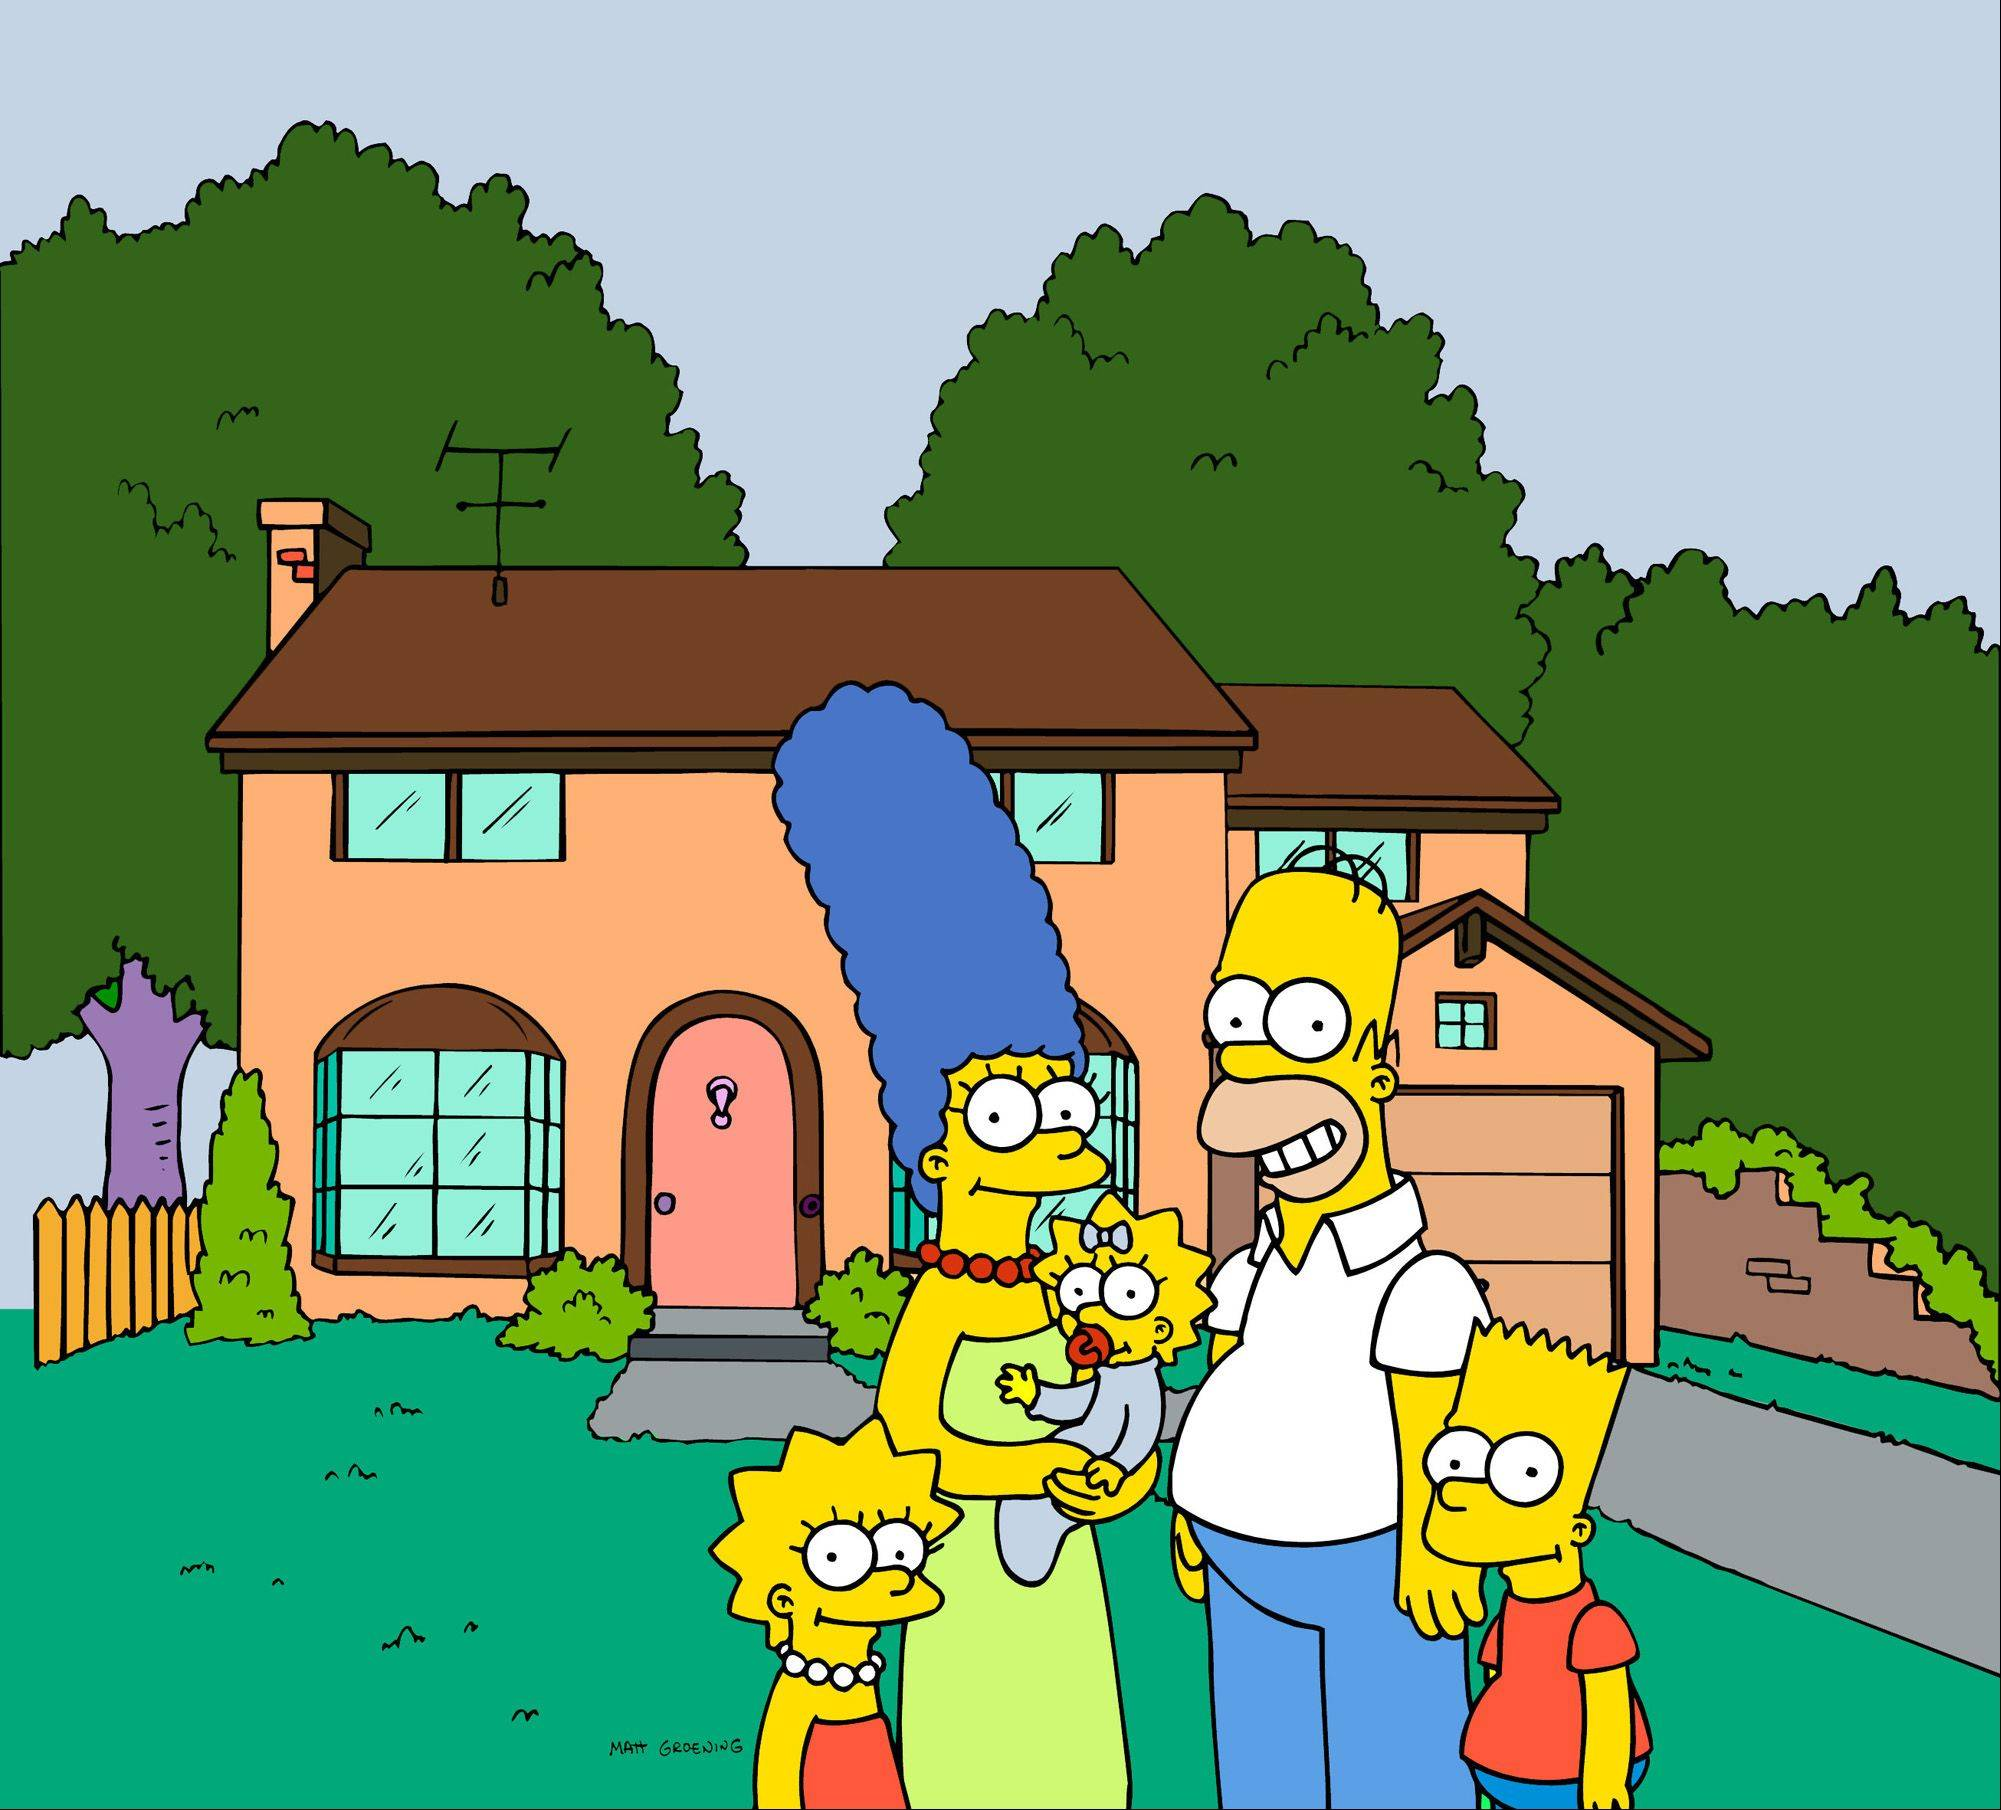 A businessman in Springfield, Ore., says it�s time for the city to embrace its most famous fictional residents and create a shopping district with a �Simpsons� theme.